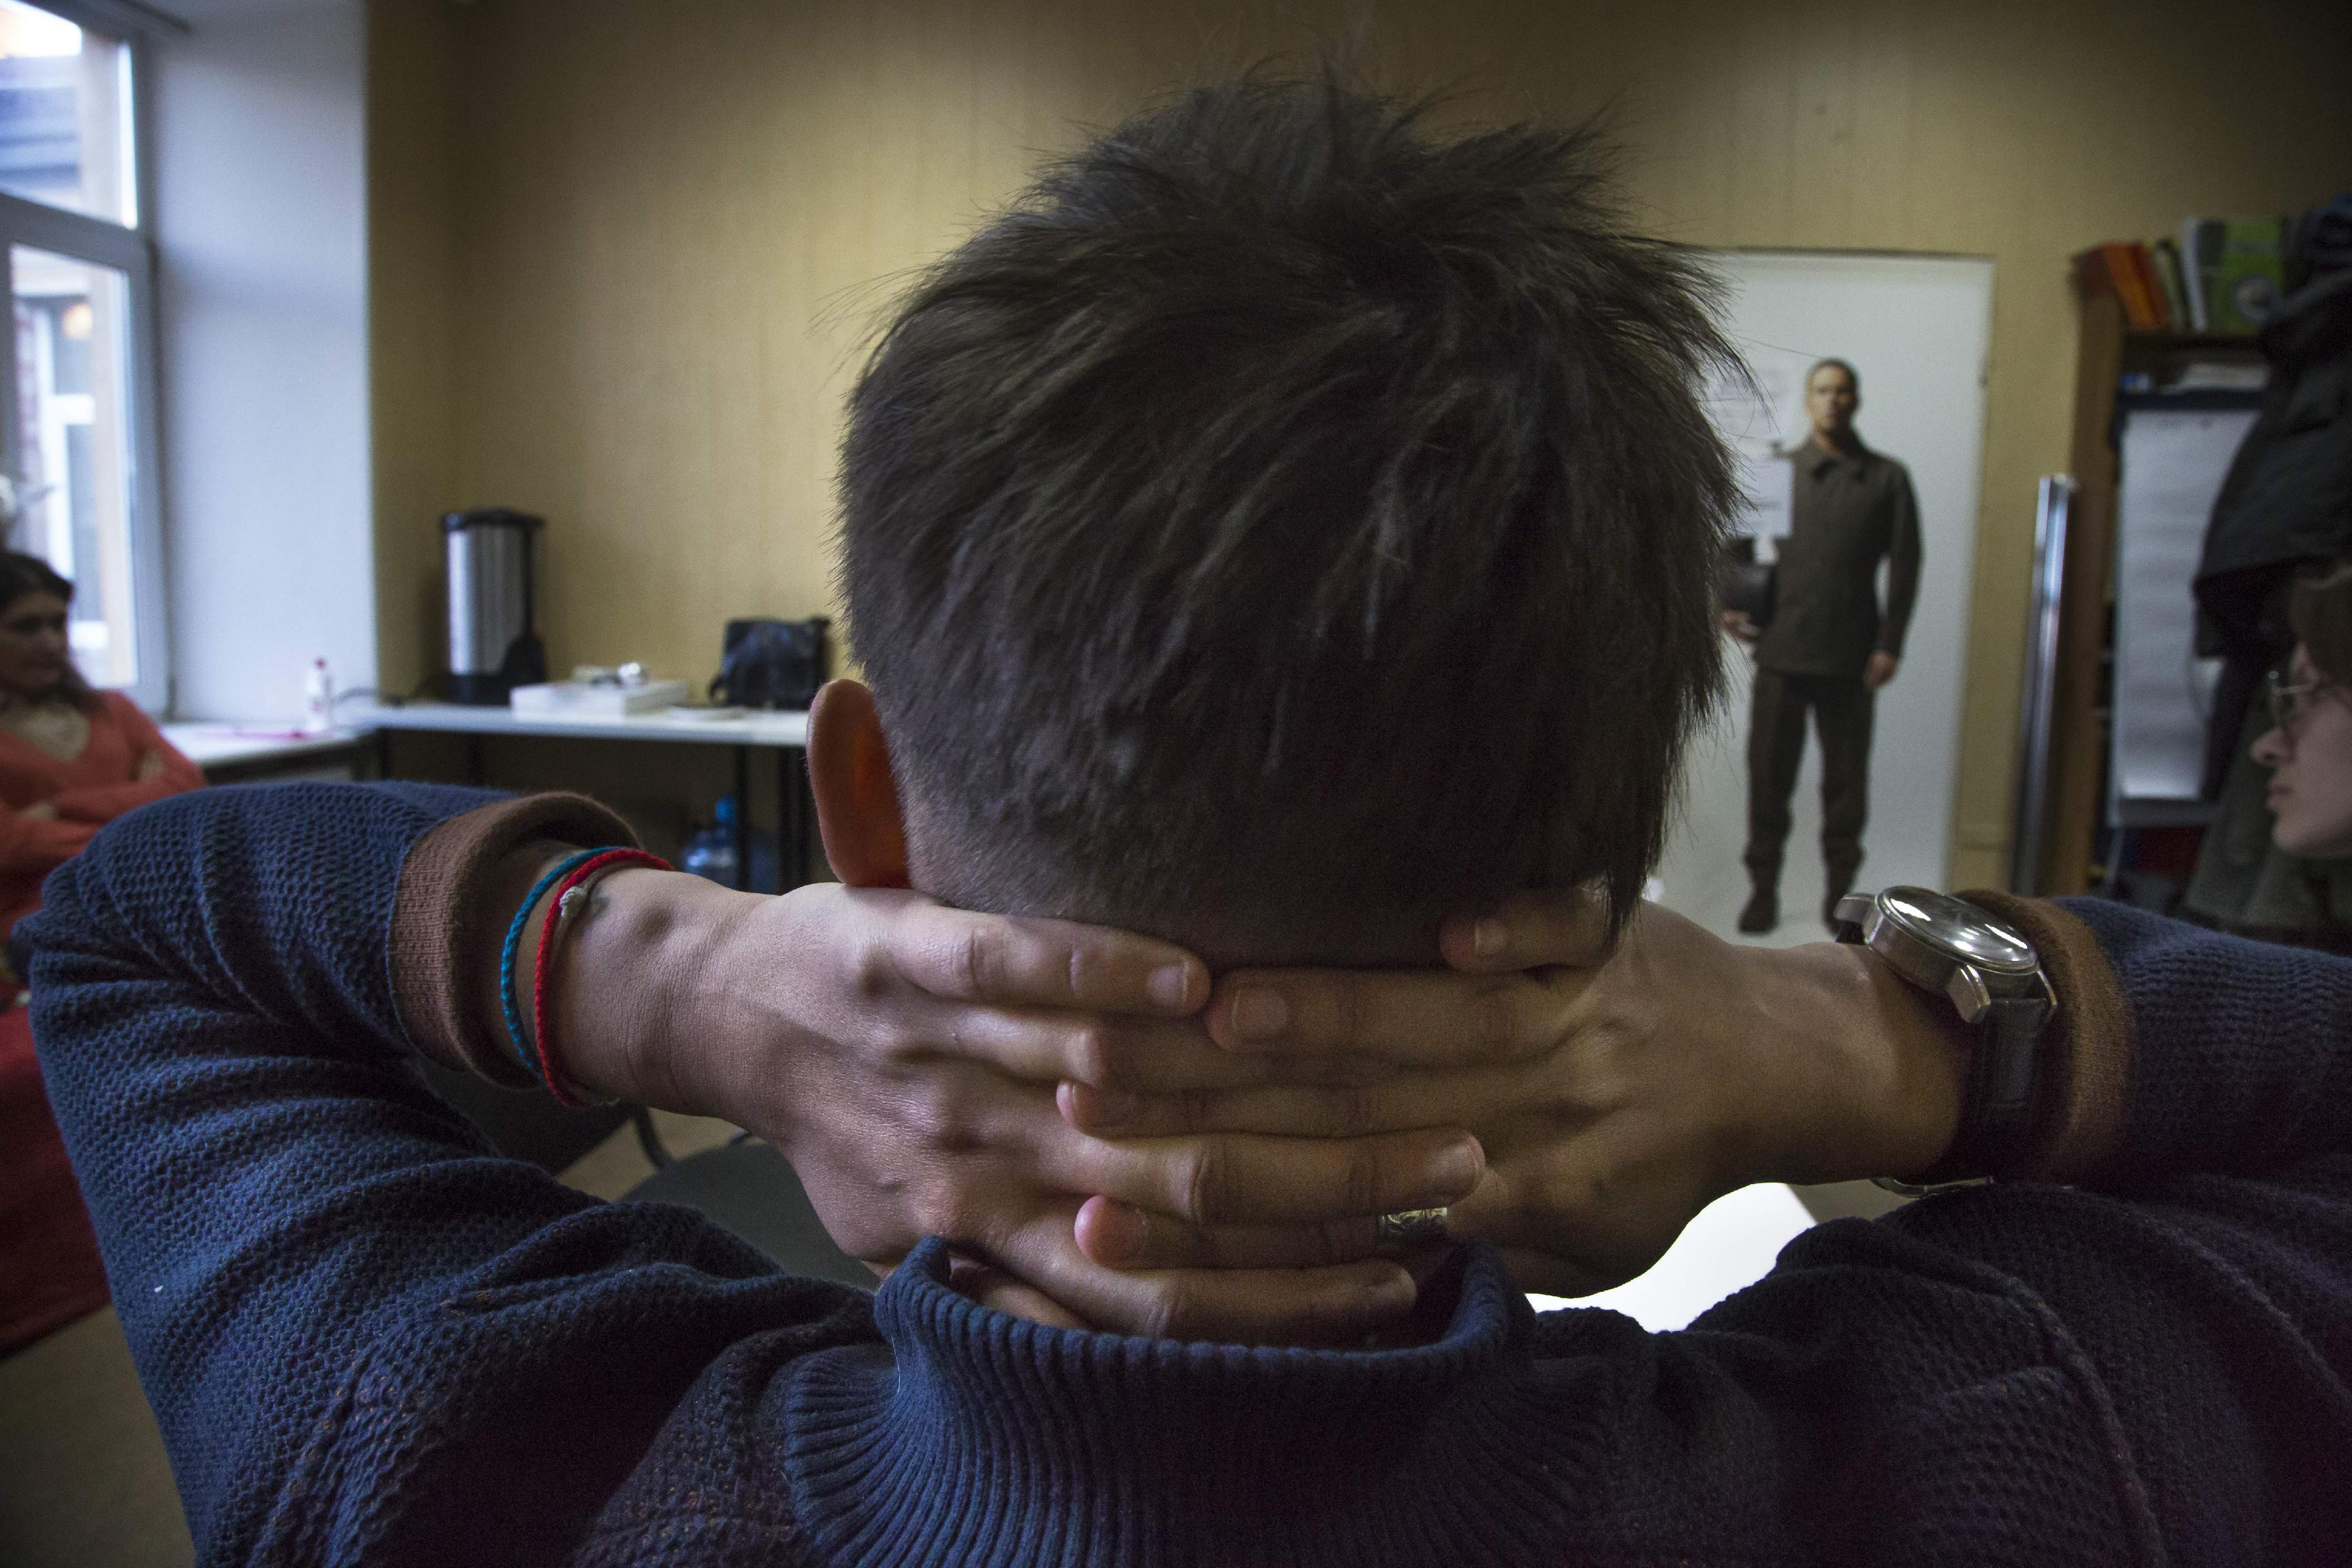 AP Poll: Russia anti-gay views on rise; teachers face brunt